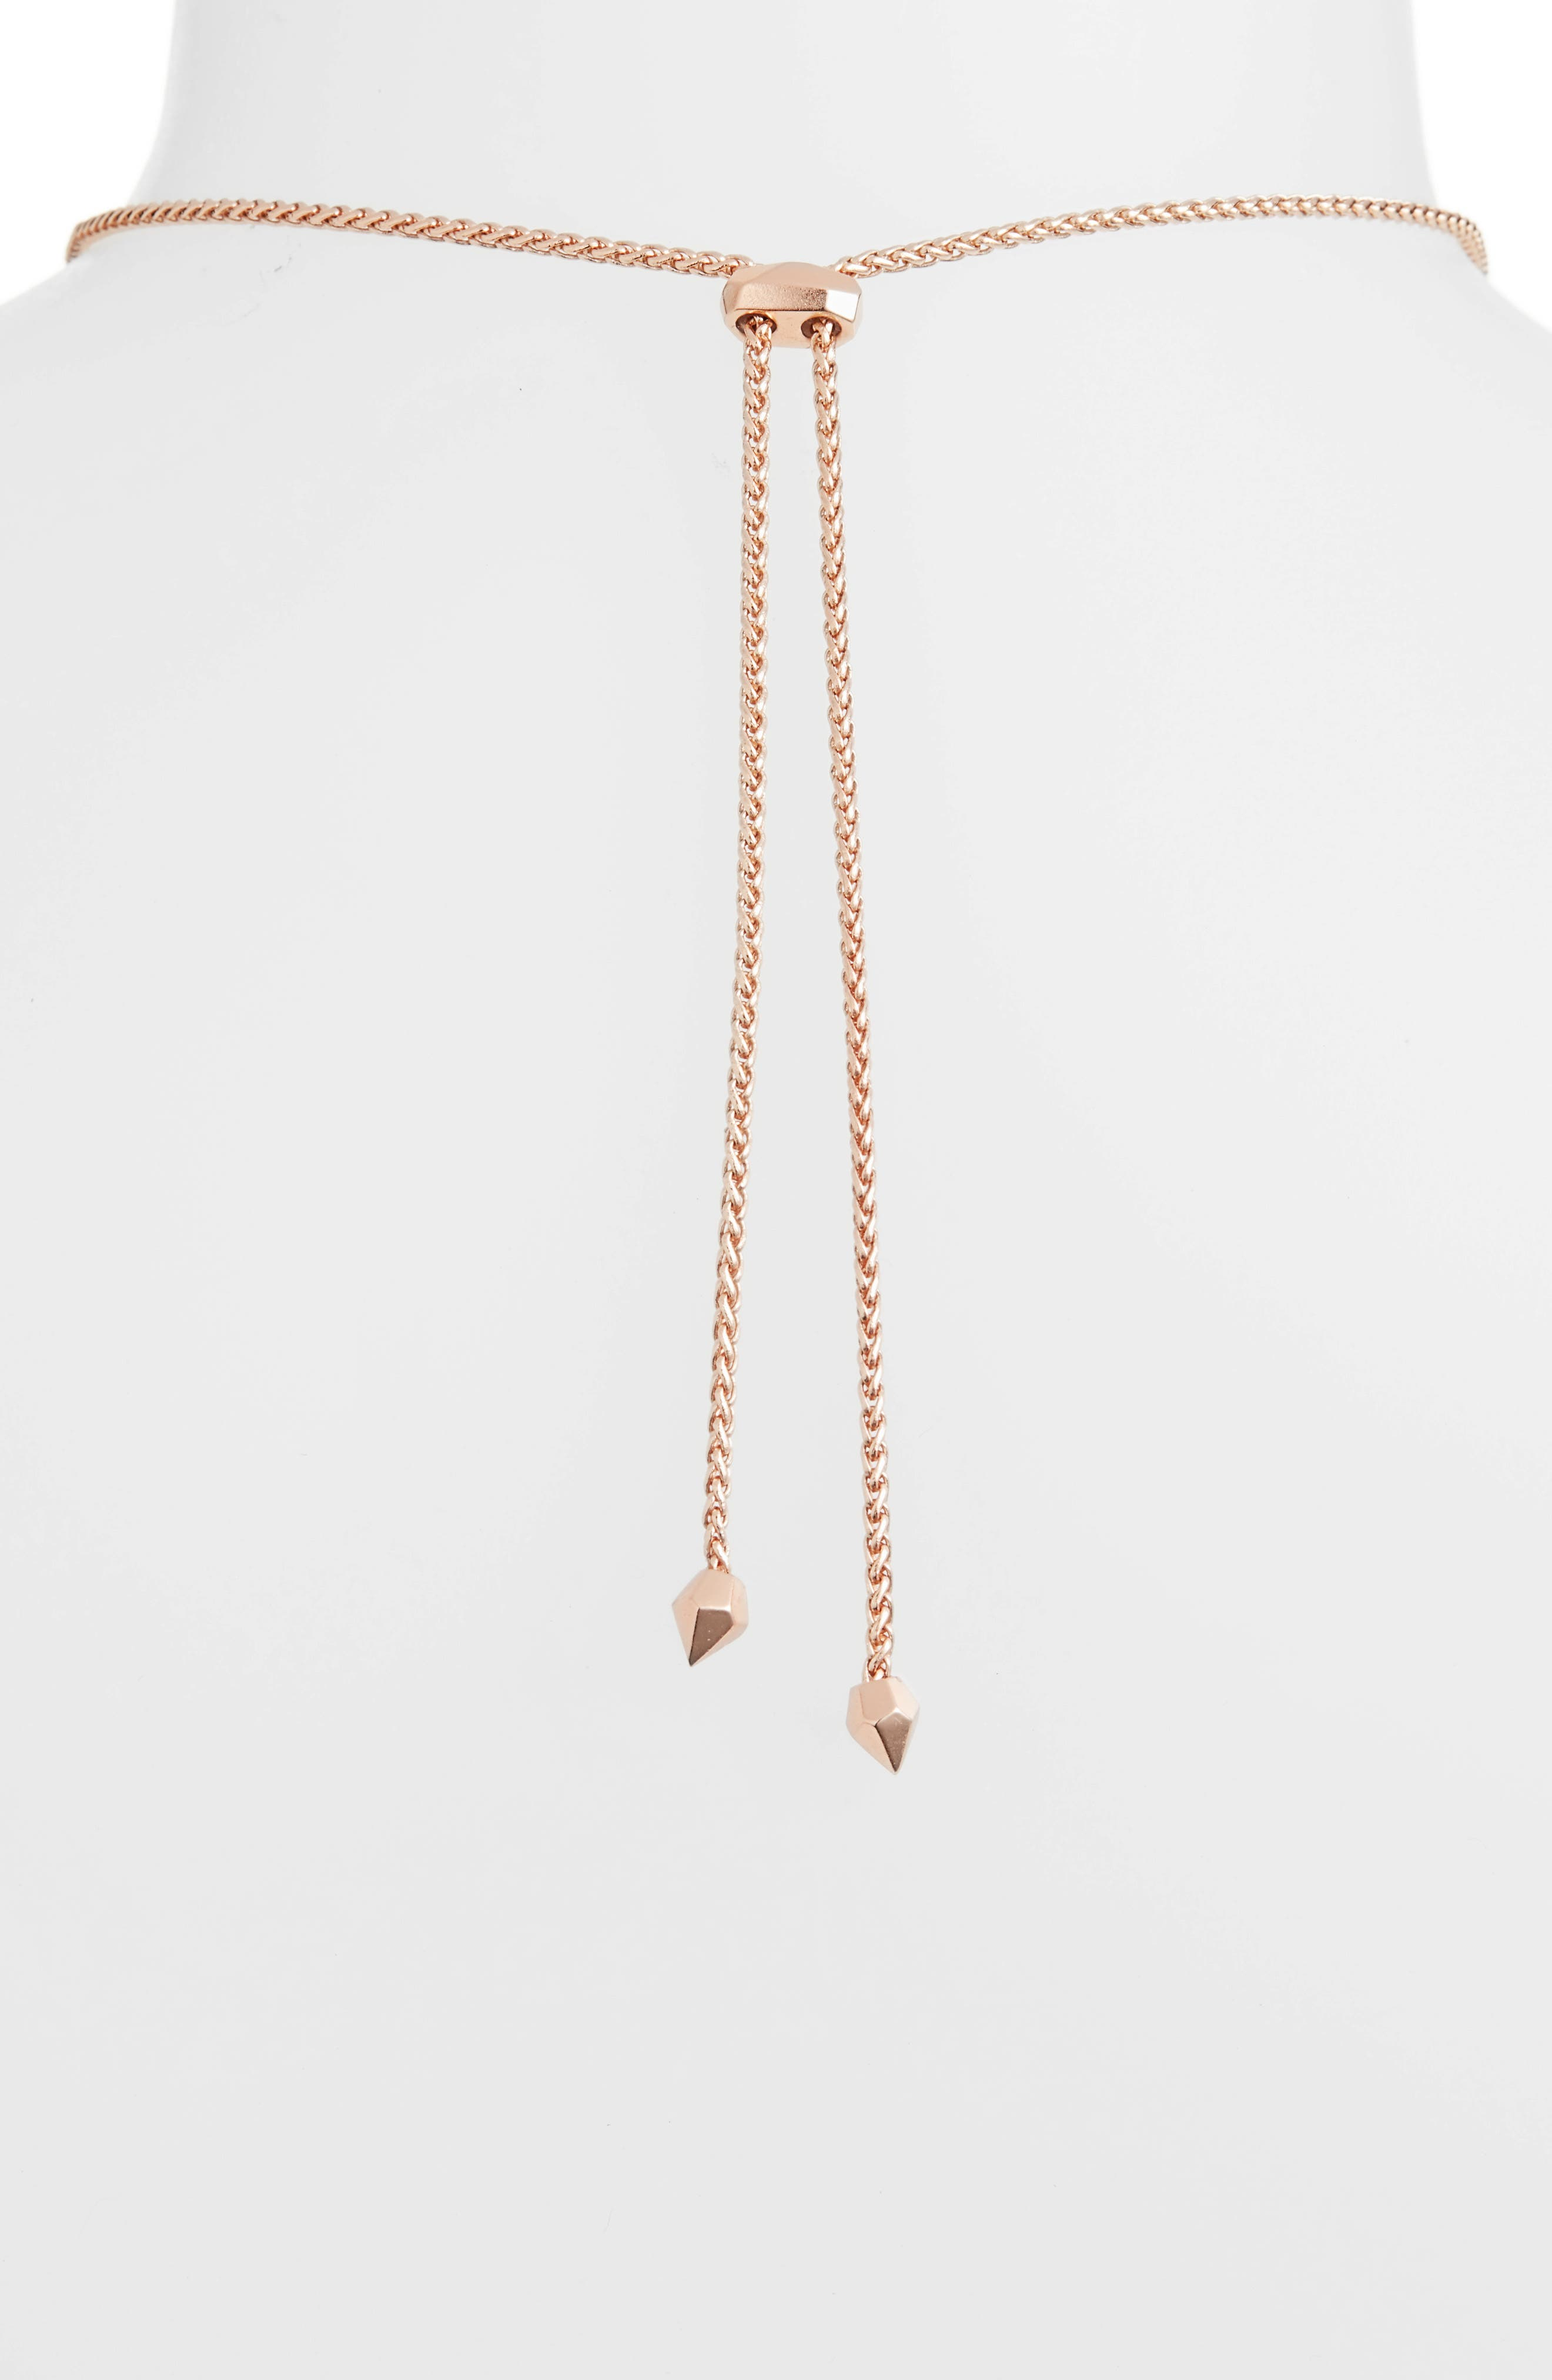 Betsy Pendant Necklace,                             Alternate thumbnail 4, color,                             LILAC MOP/ ROSE GOLD